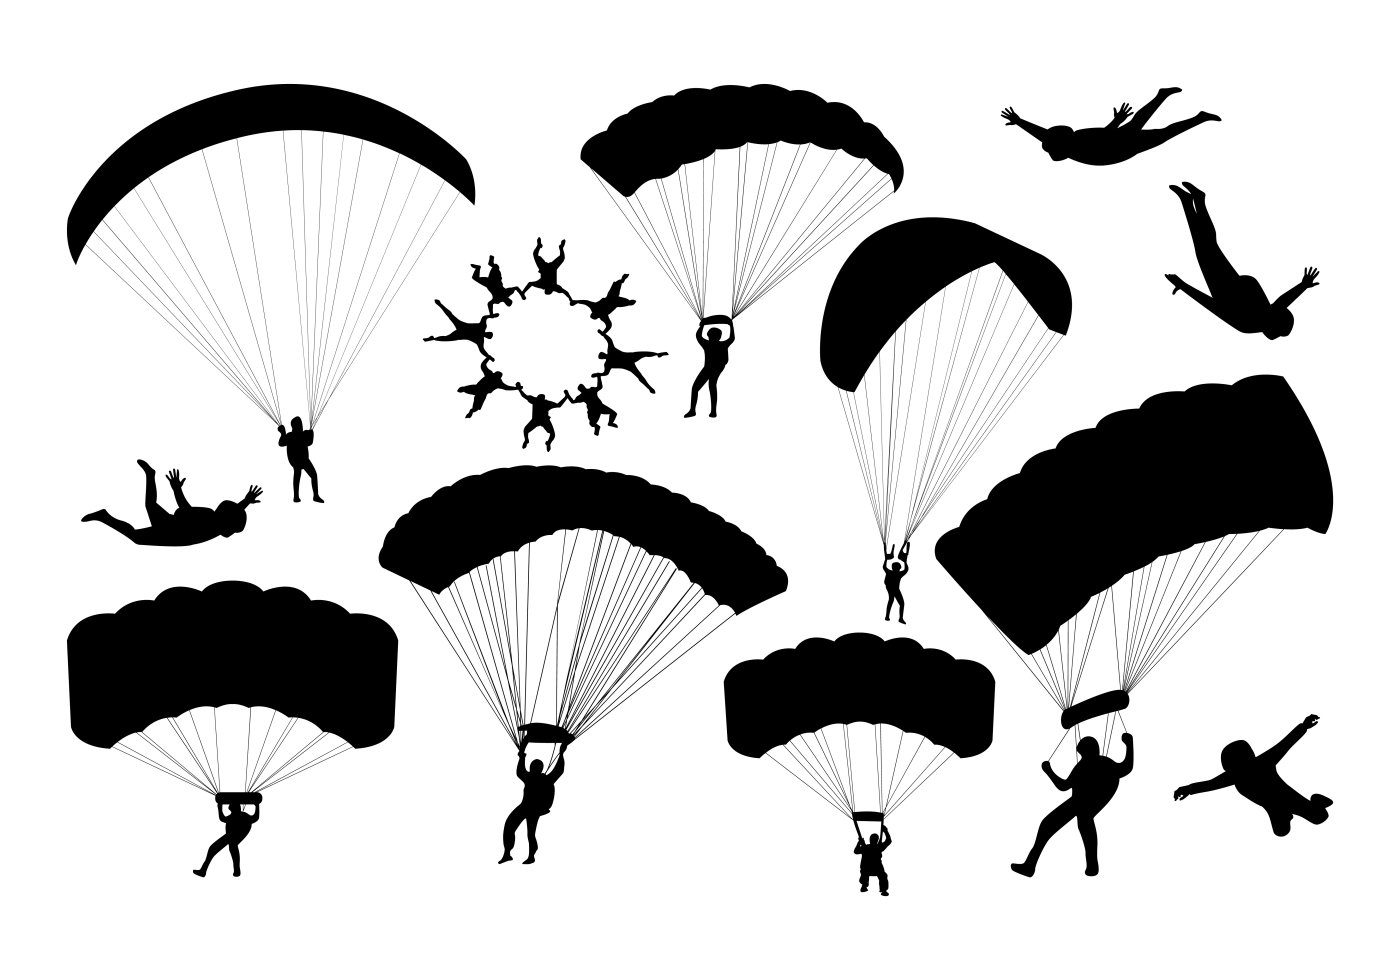 Skydiving Silhouettes Vector